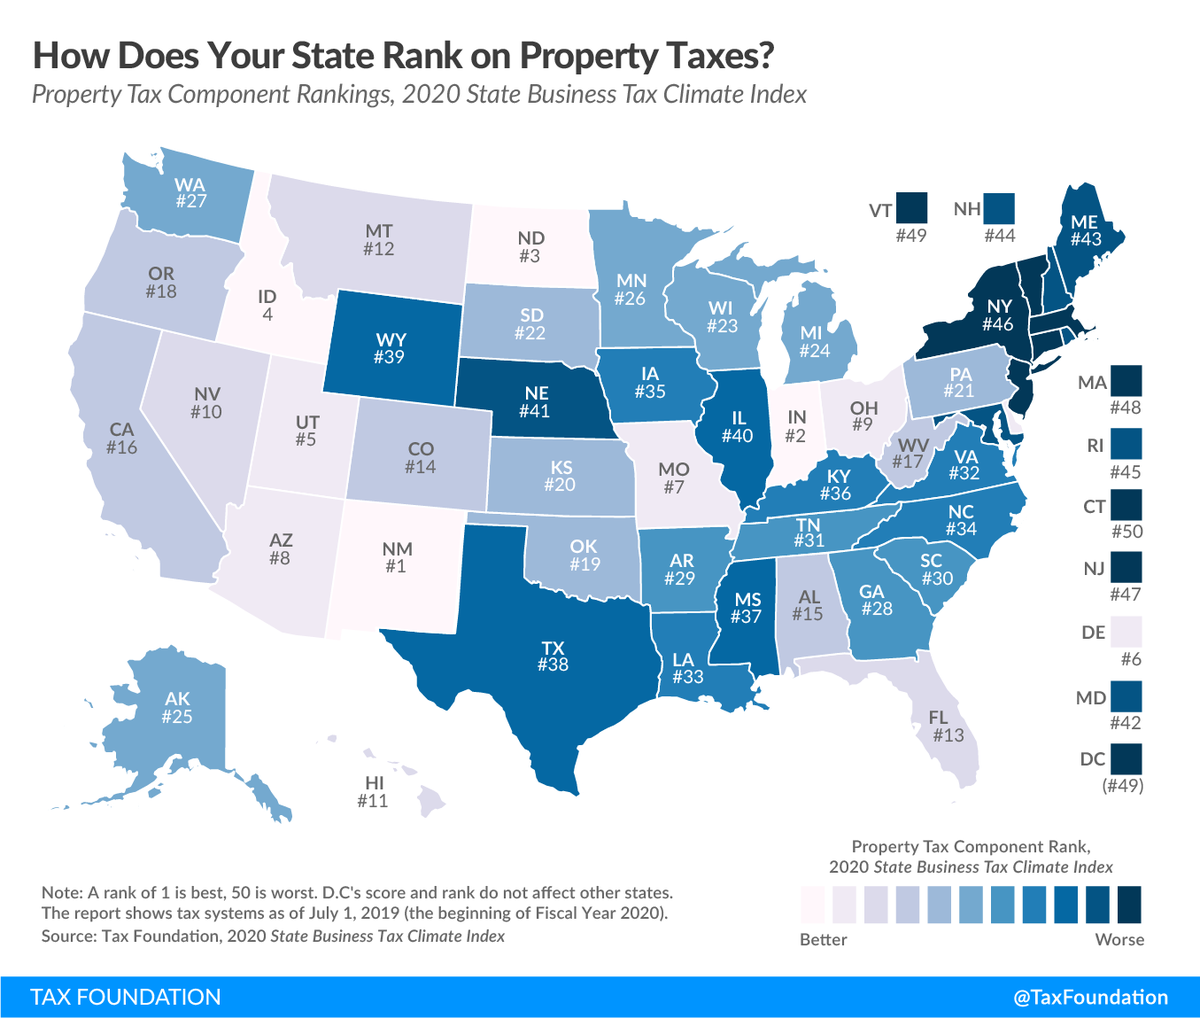 How does your state rank on property taxes?States are in a better position to attract business investment when they maintain competitive real property tax rates and avoid harmful taxes on tangible personal property, wealth, and asset transfers: https://buff.ly/2wujN4w